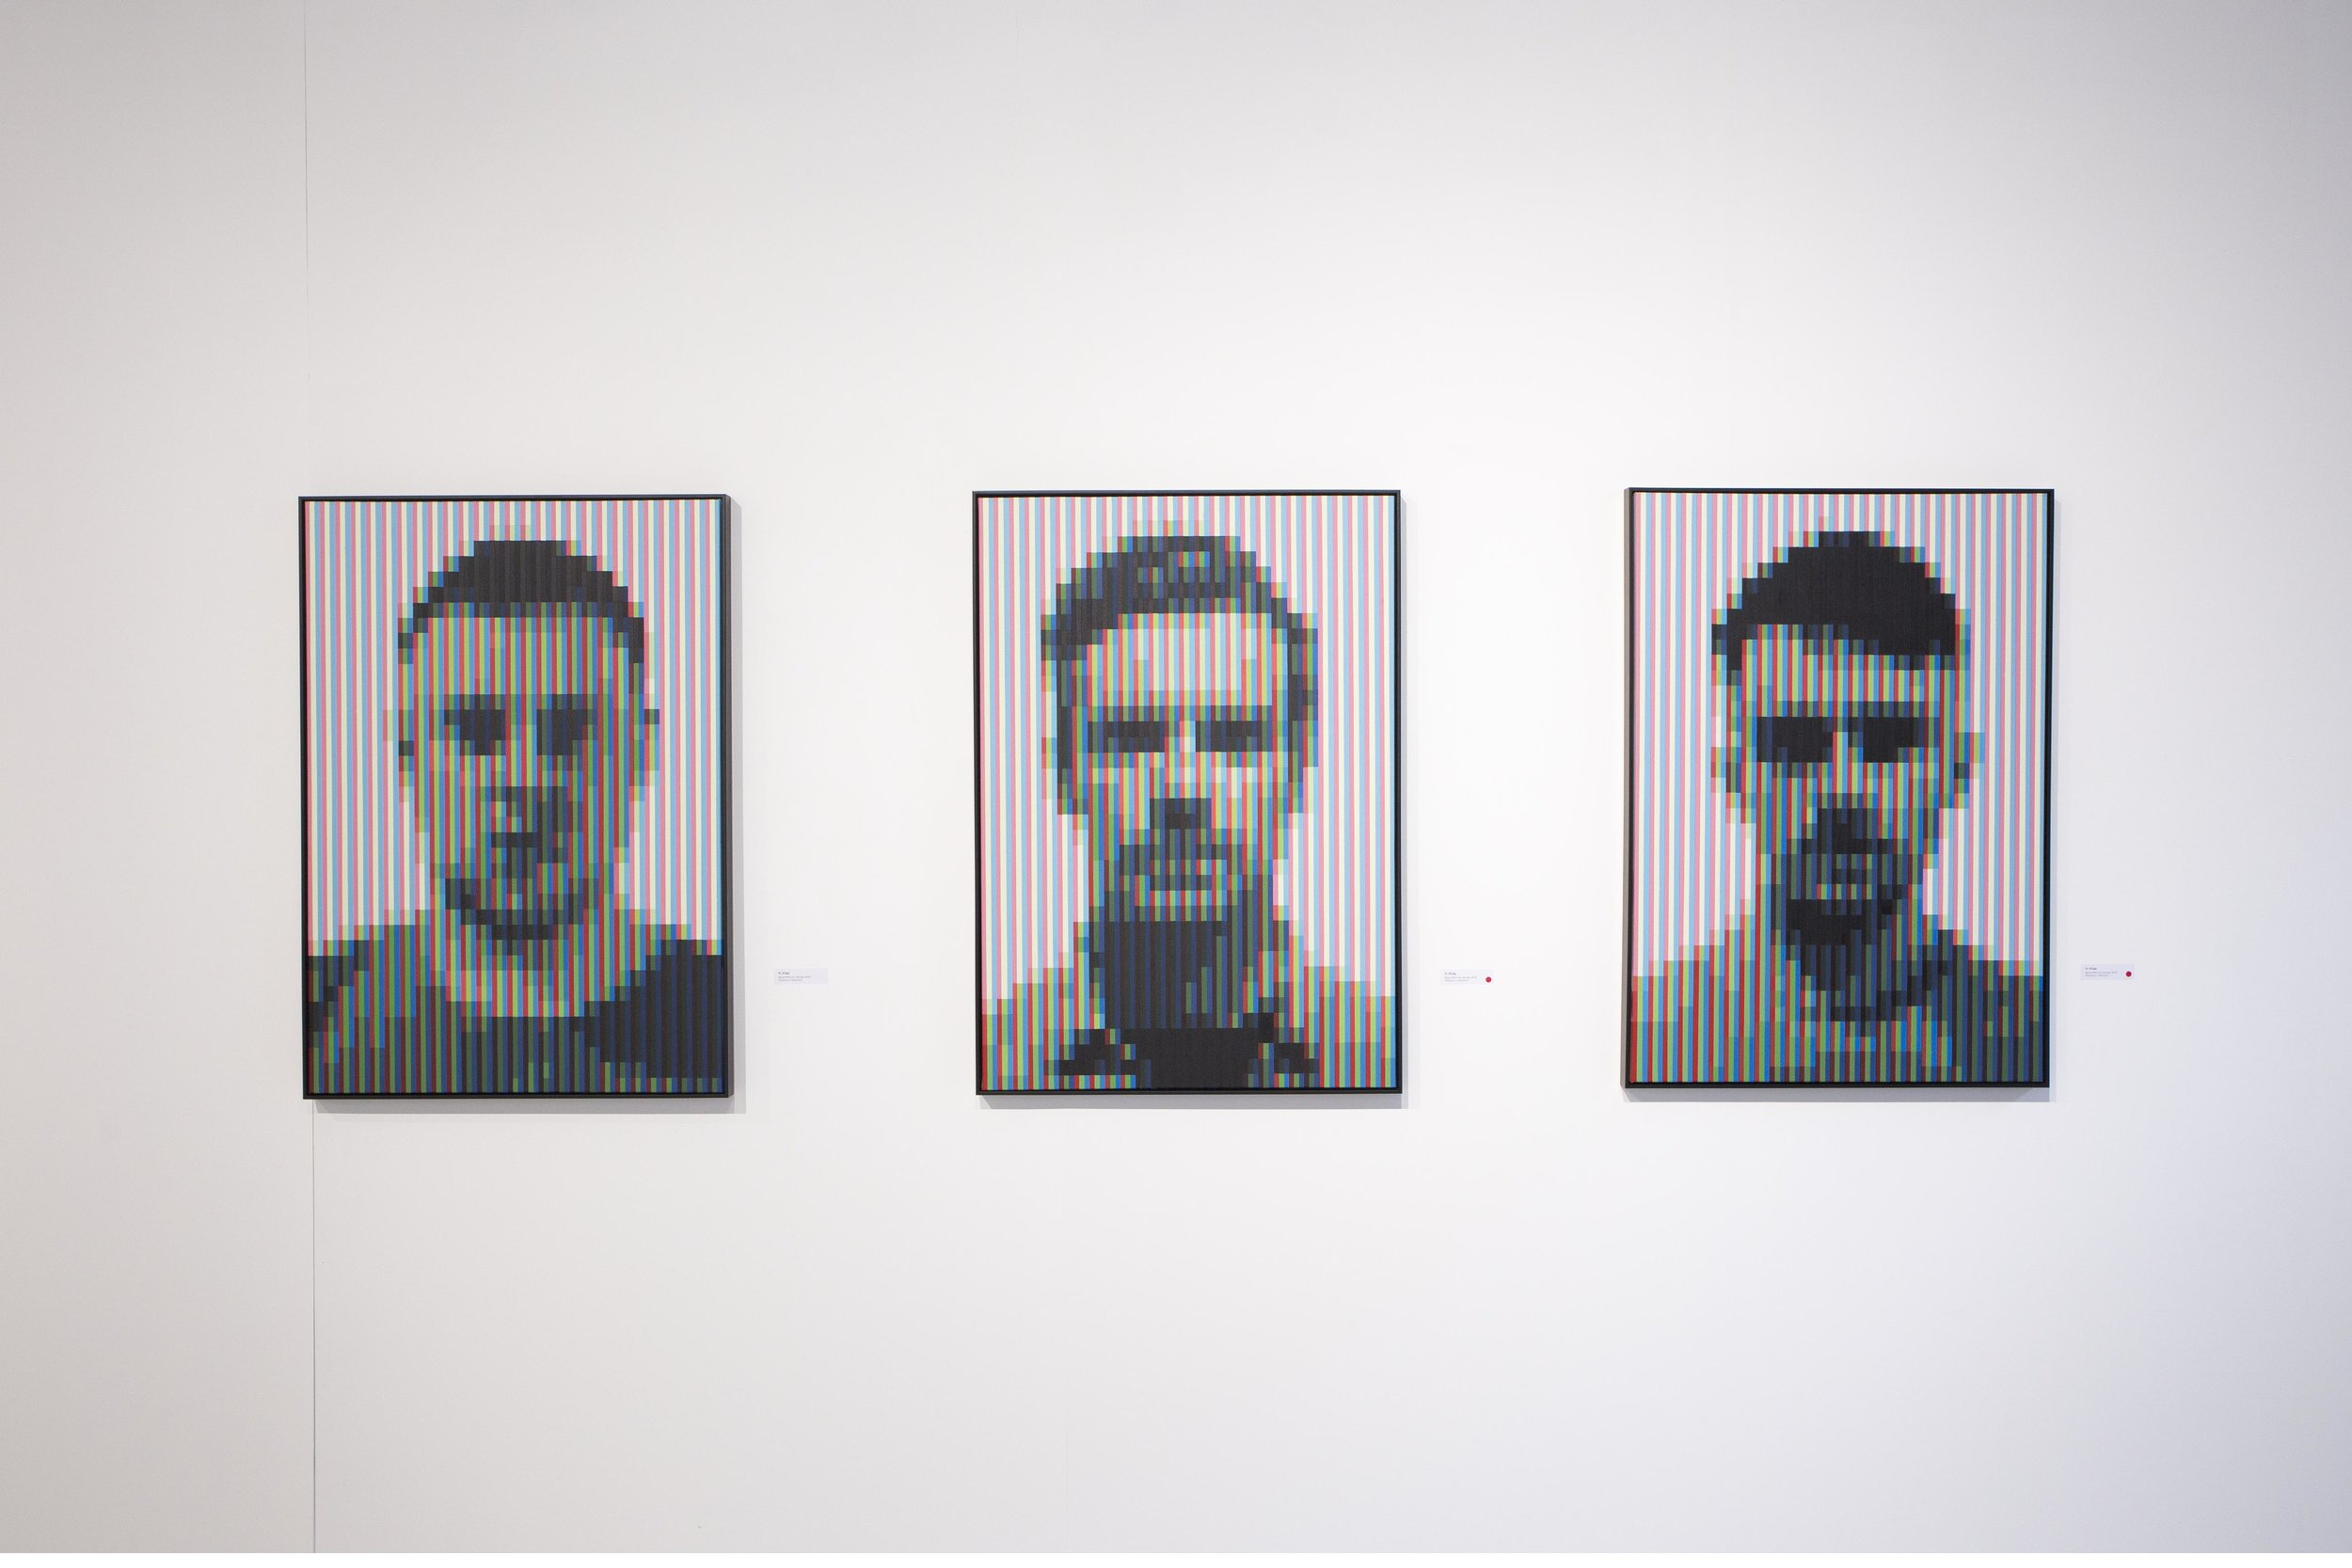 Left to Right: 'DI_07', 'DI_06', 'DI_05', 2019, Spray Paint on Canvas, 70 x 100 cm, Atelier Maser.